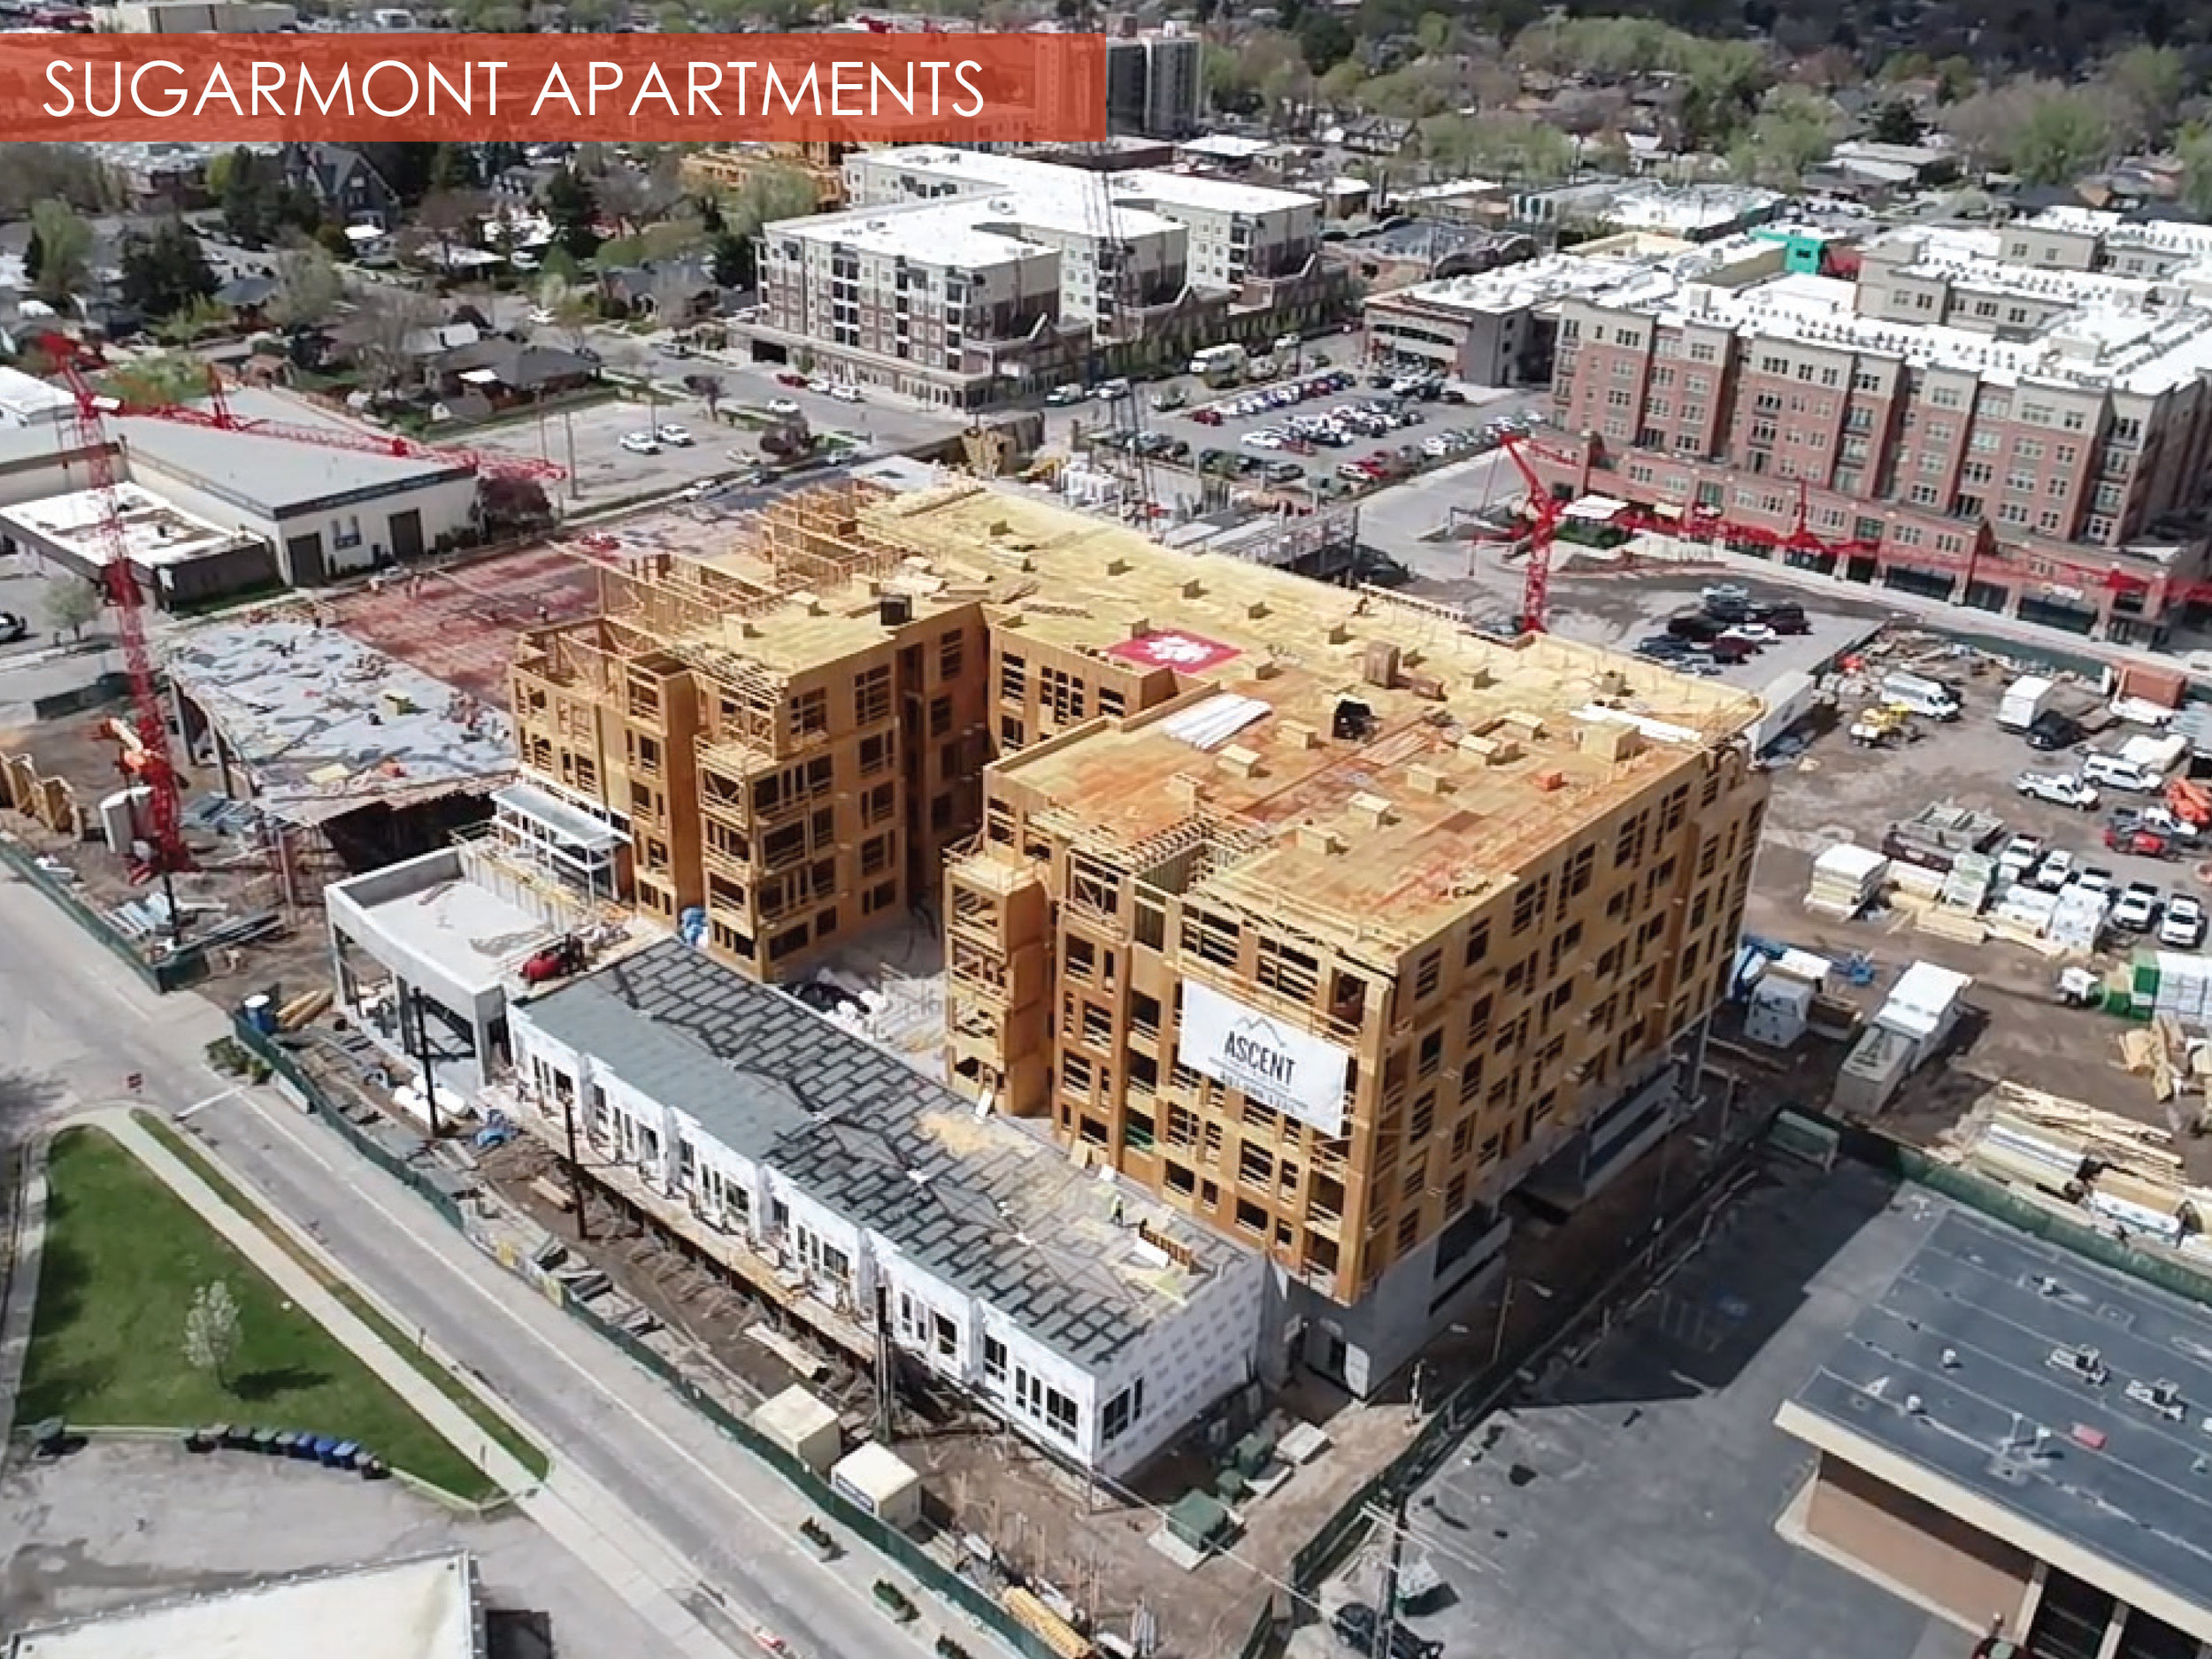 Sugarmont Apartments, Salt Lake City, Utah  The two buildings of the Sugarmont Apartments are well underway, but at various stages in construction. The buildings are 8 stories, connected from stories 4 through 8. Building 2 (foreground in picture below) is working through framing, while Building one is finishing up concrete pours. This project is scheduled for completion January 2019.